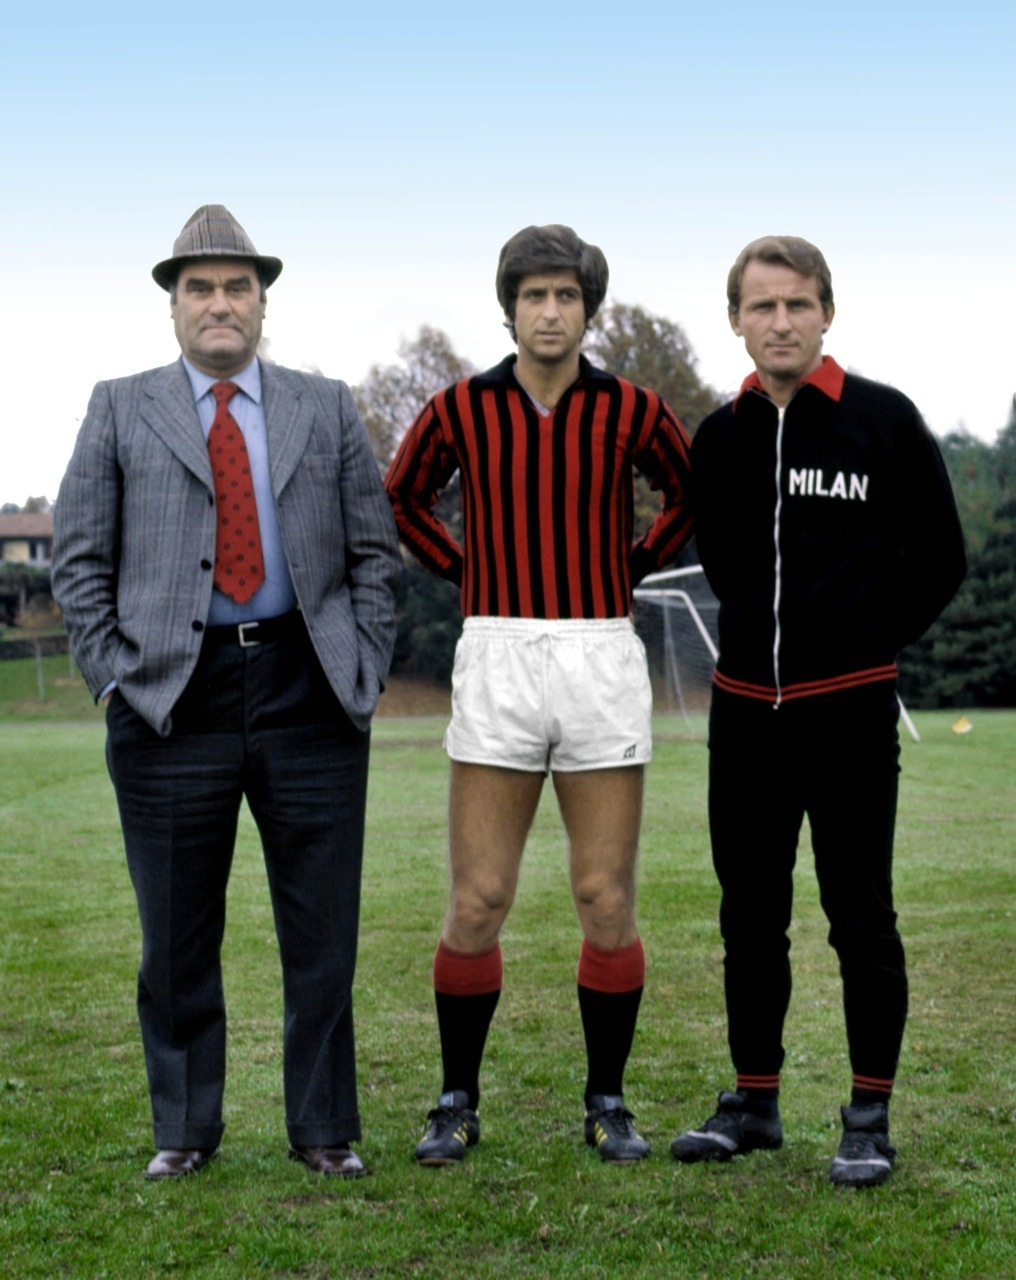 Rocco, Rivera and Trapattoni, probably early 1970s.